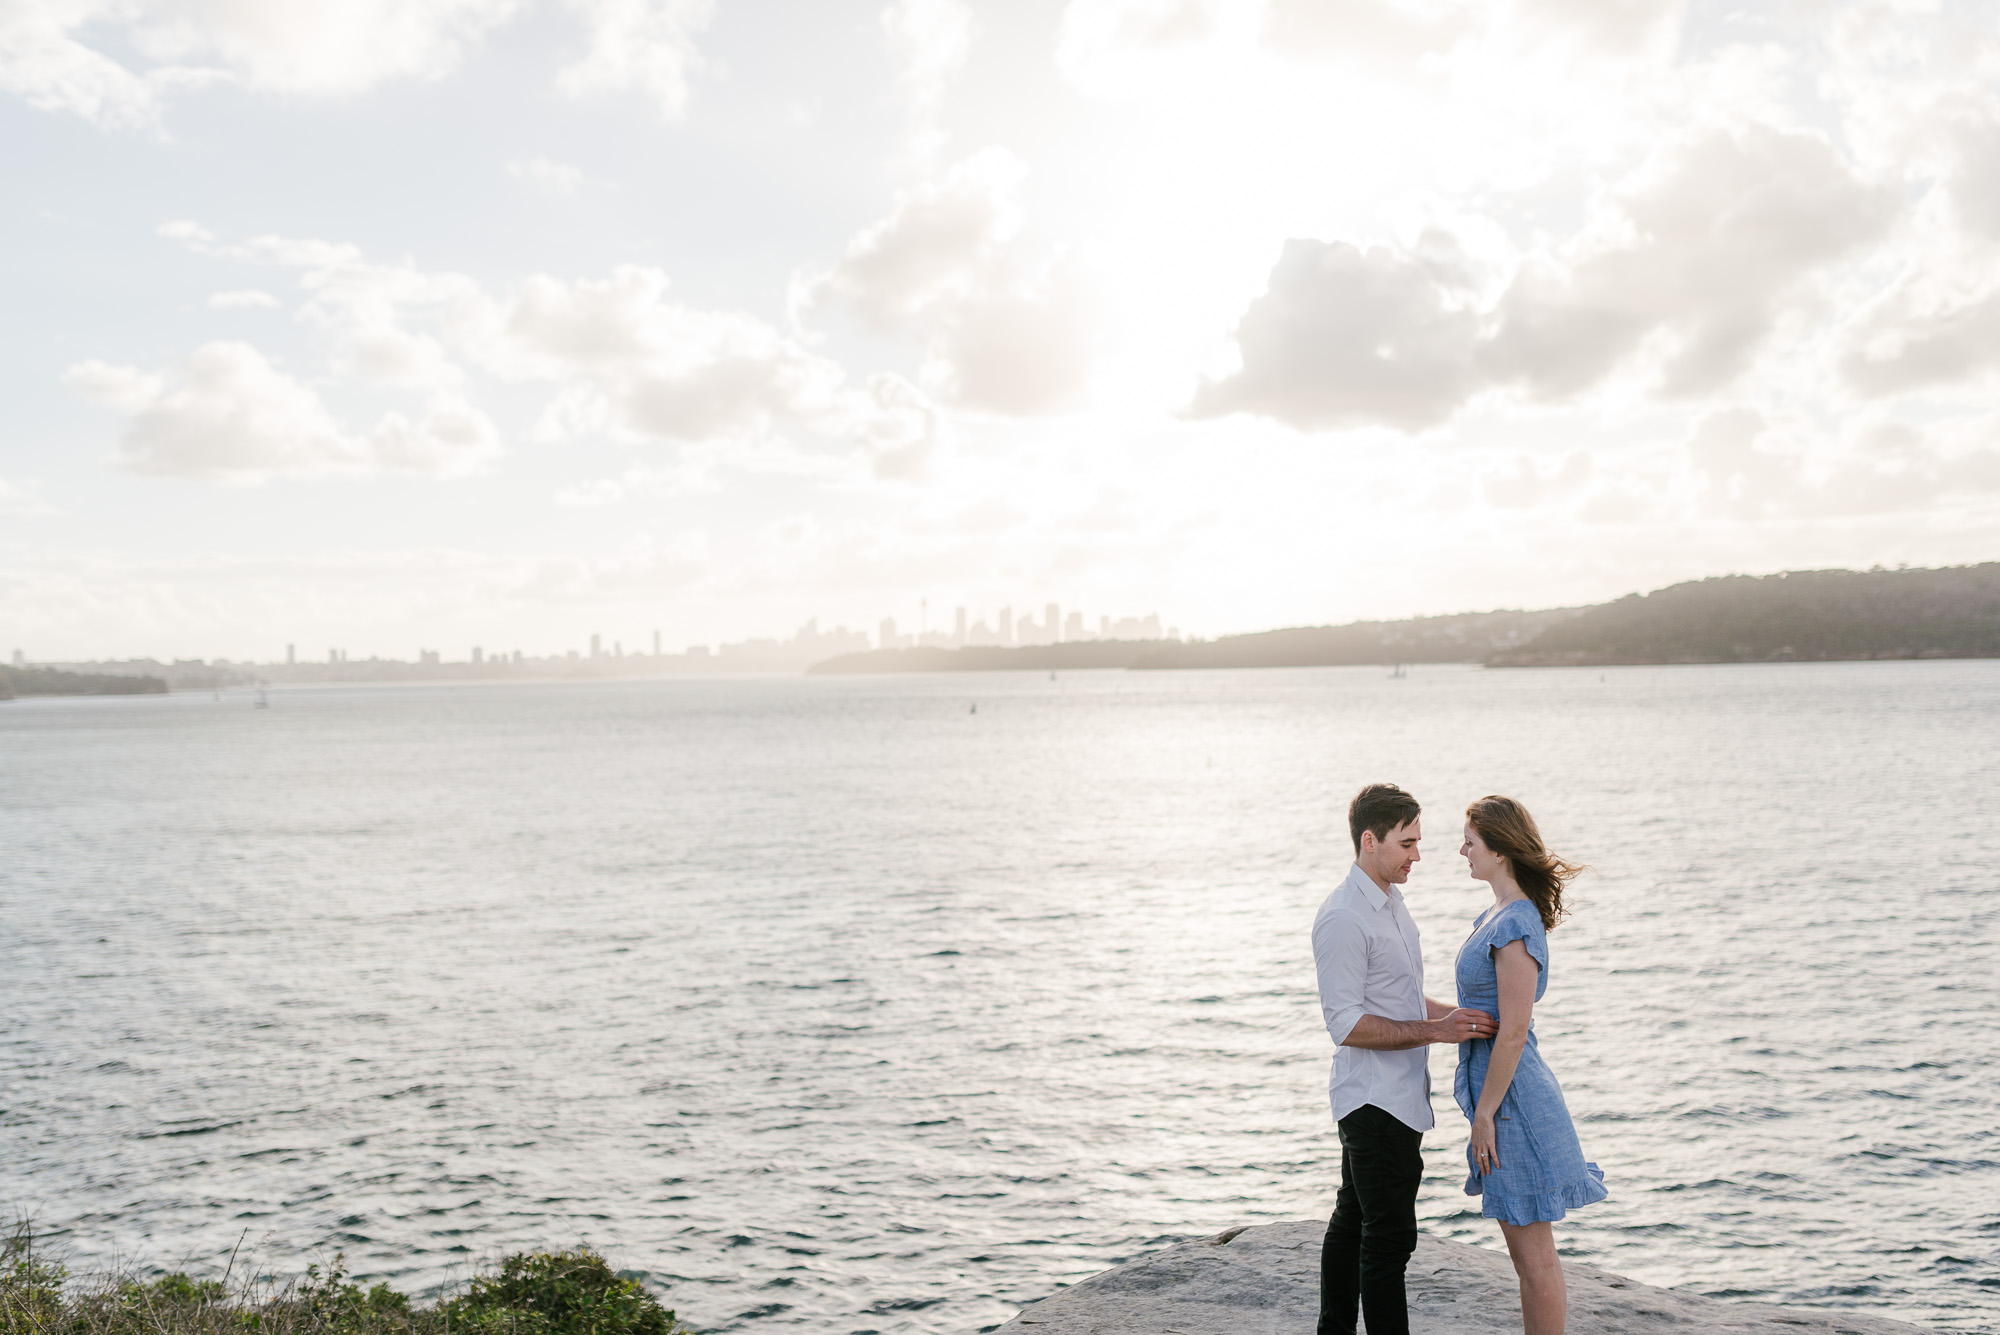 PhotographybyRenata_Proposal_Shoot_Watsons-Bay-Camp_Cove-298.JPG